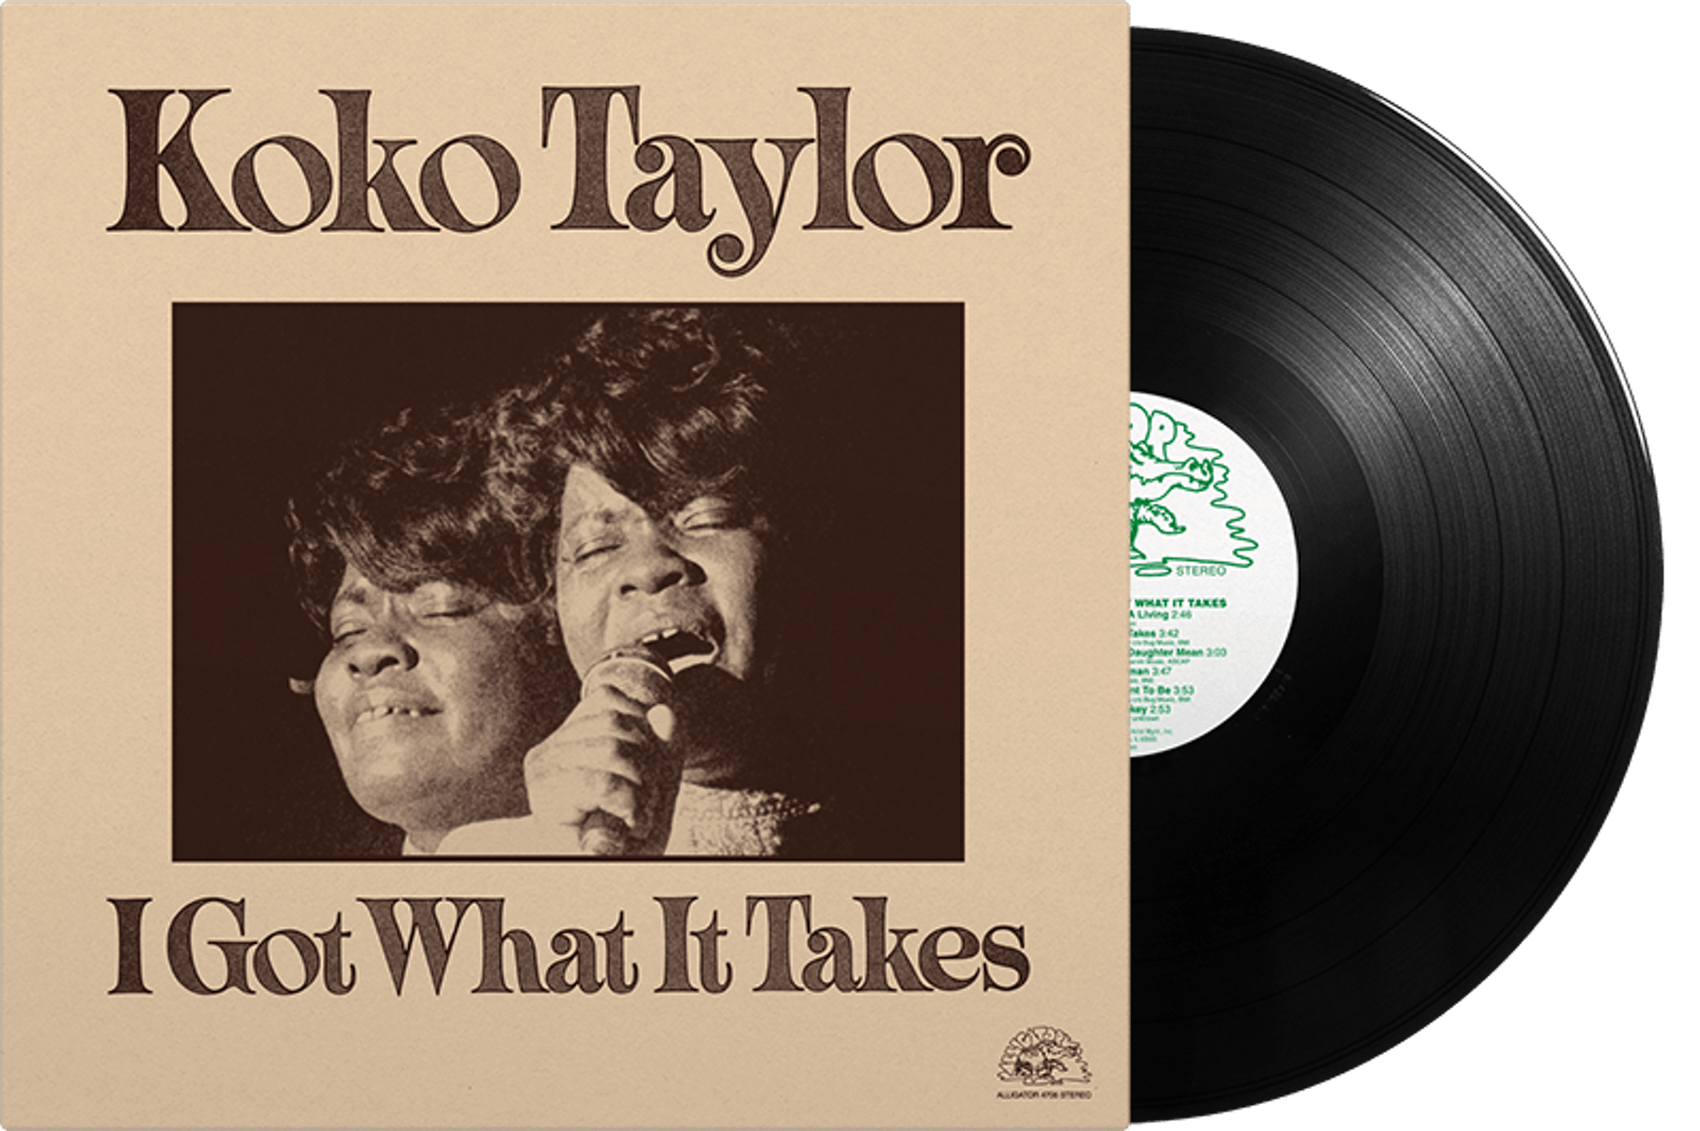 Koko Taylor's I Got What It Takes Is February's Classics